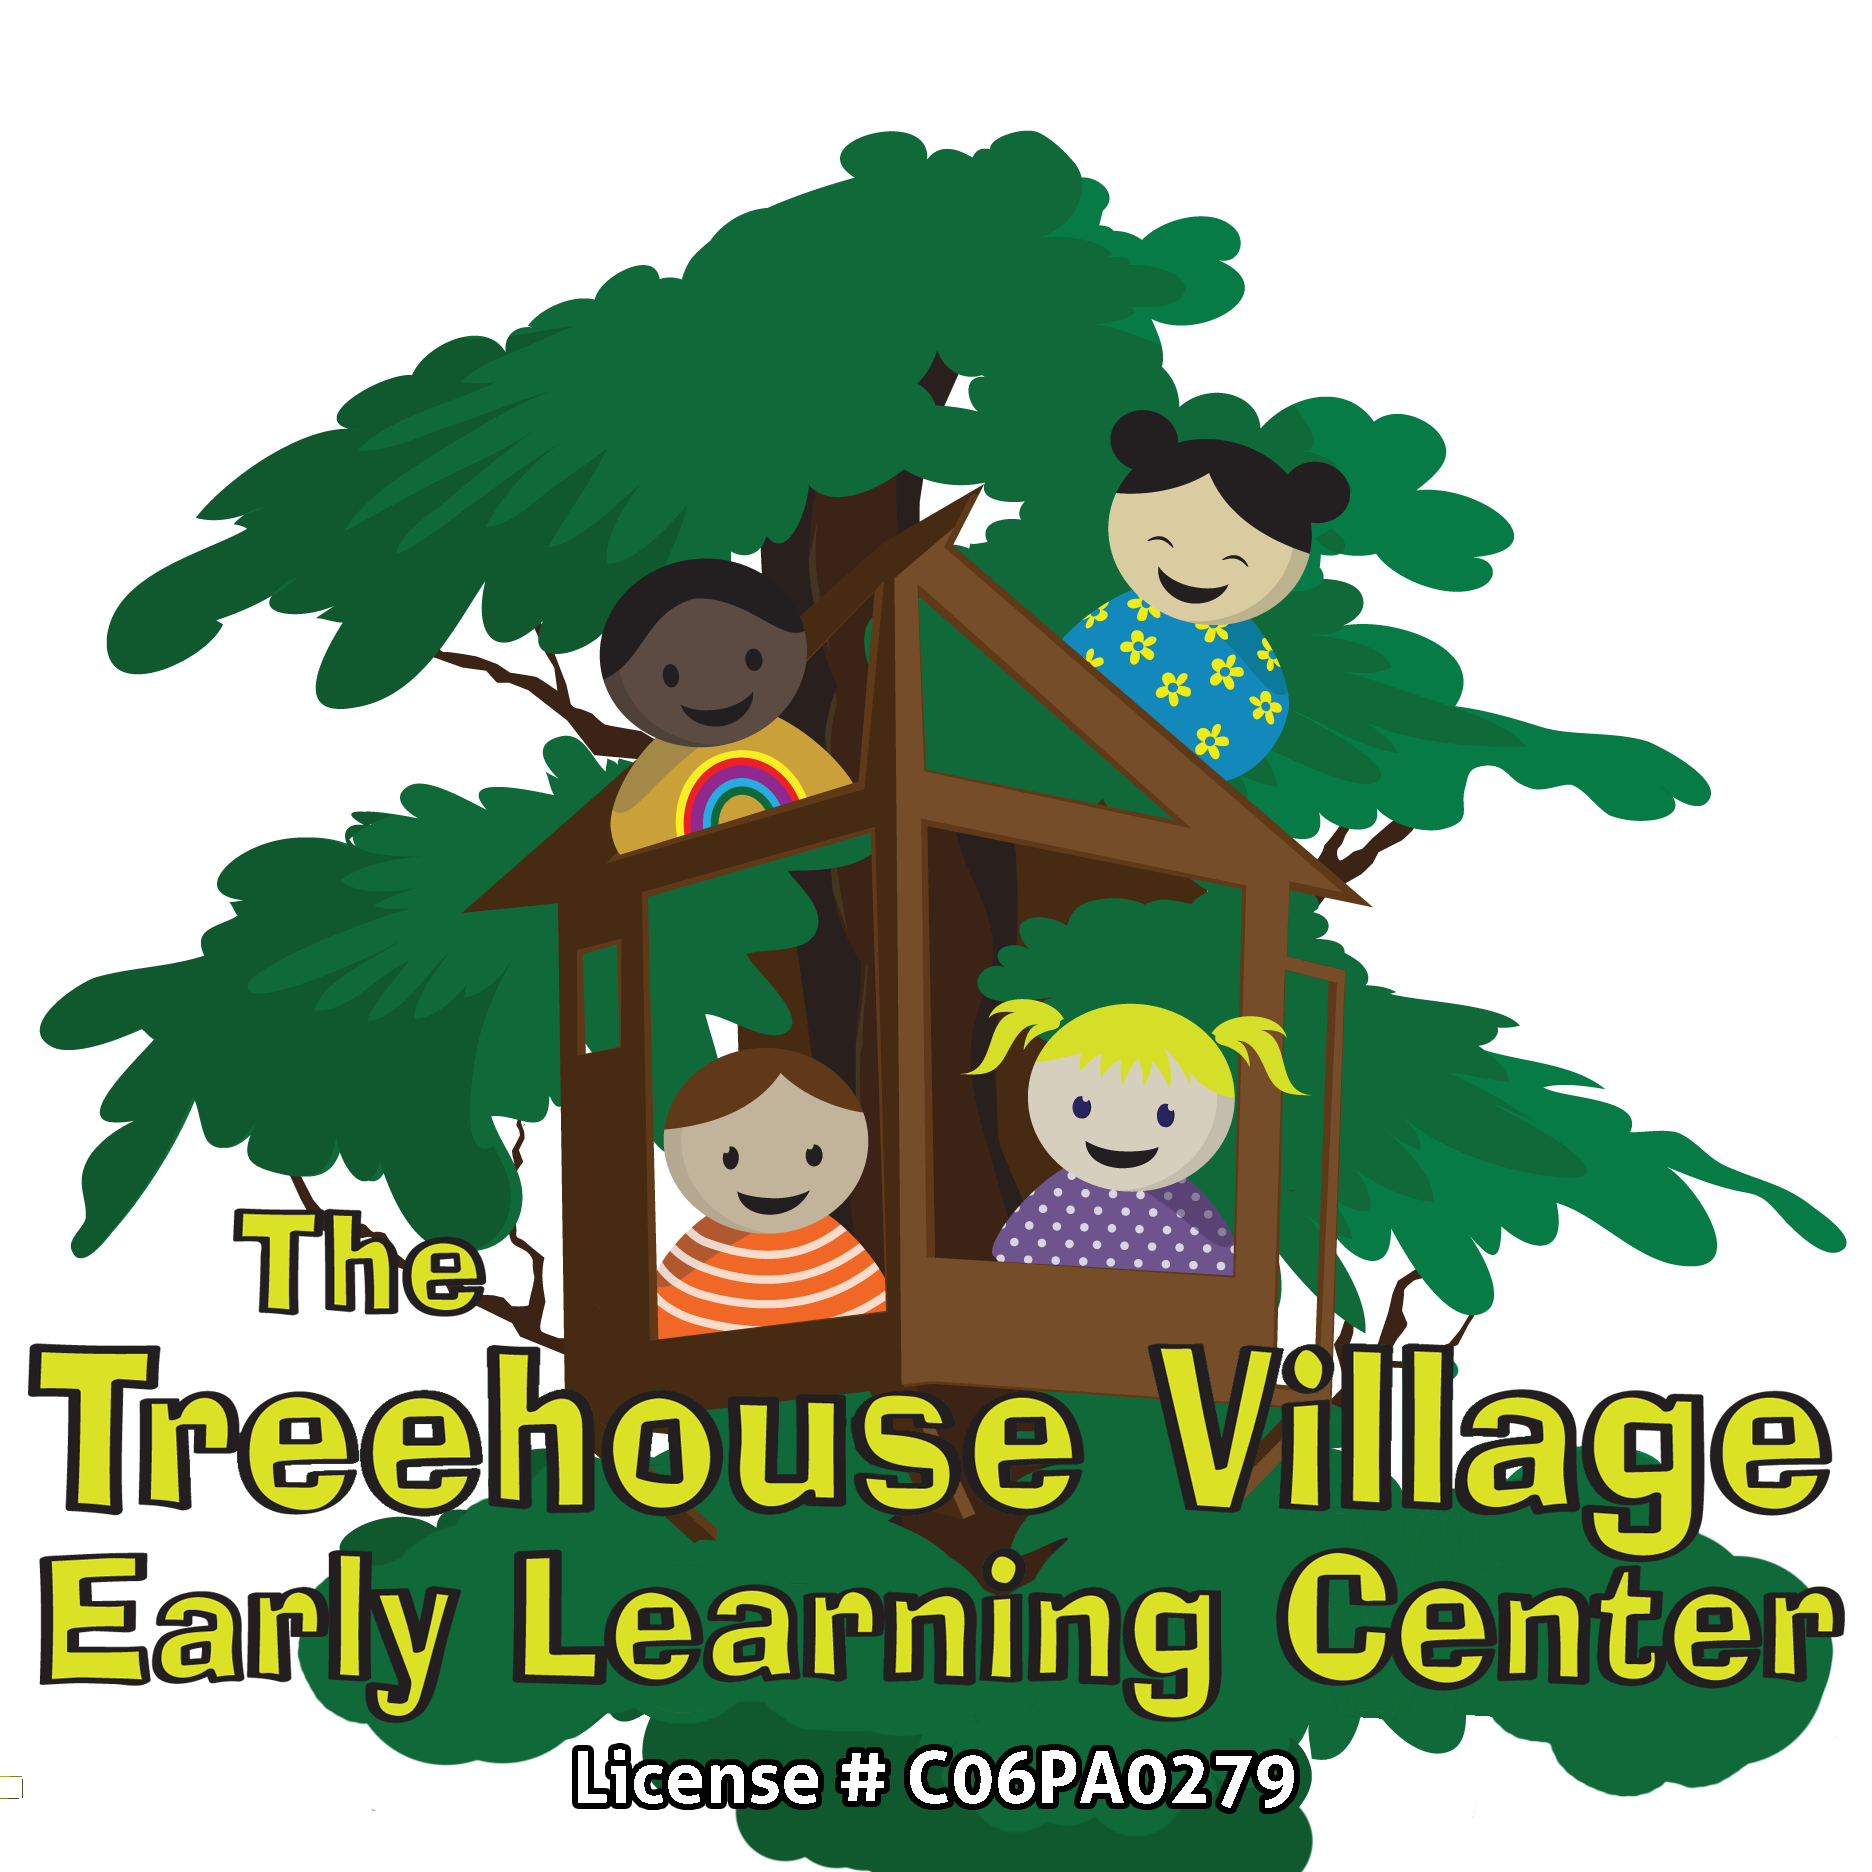 The Treehouse Village